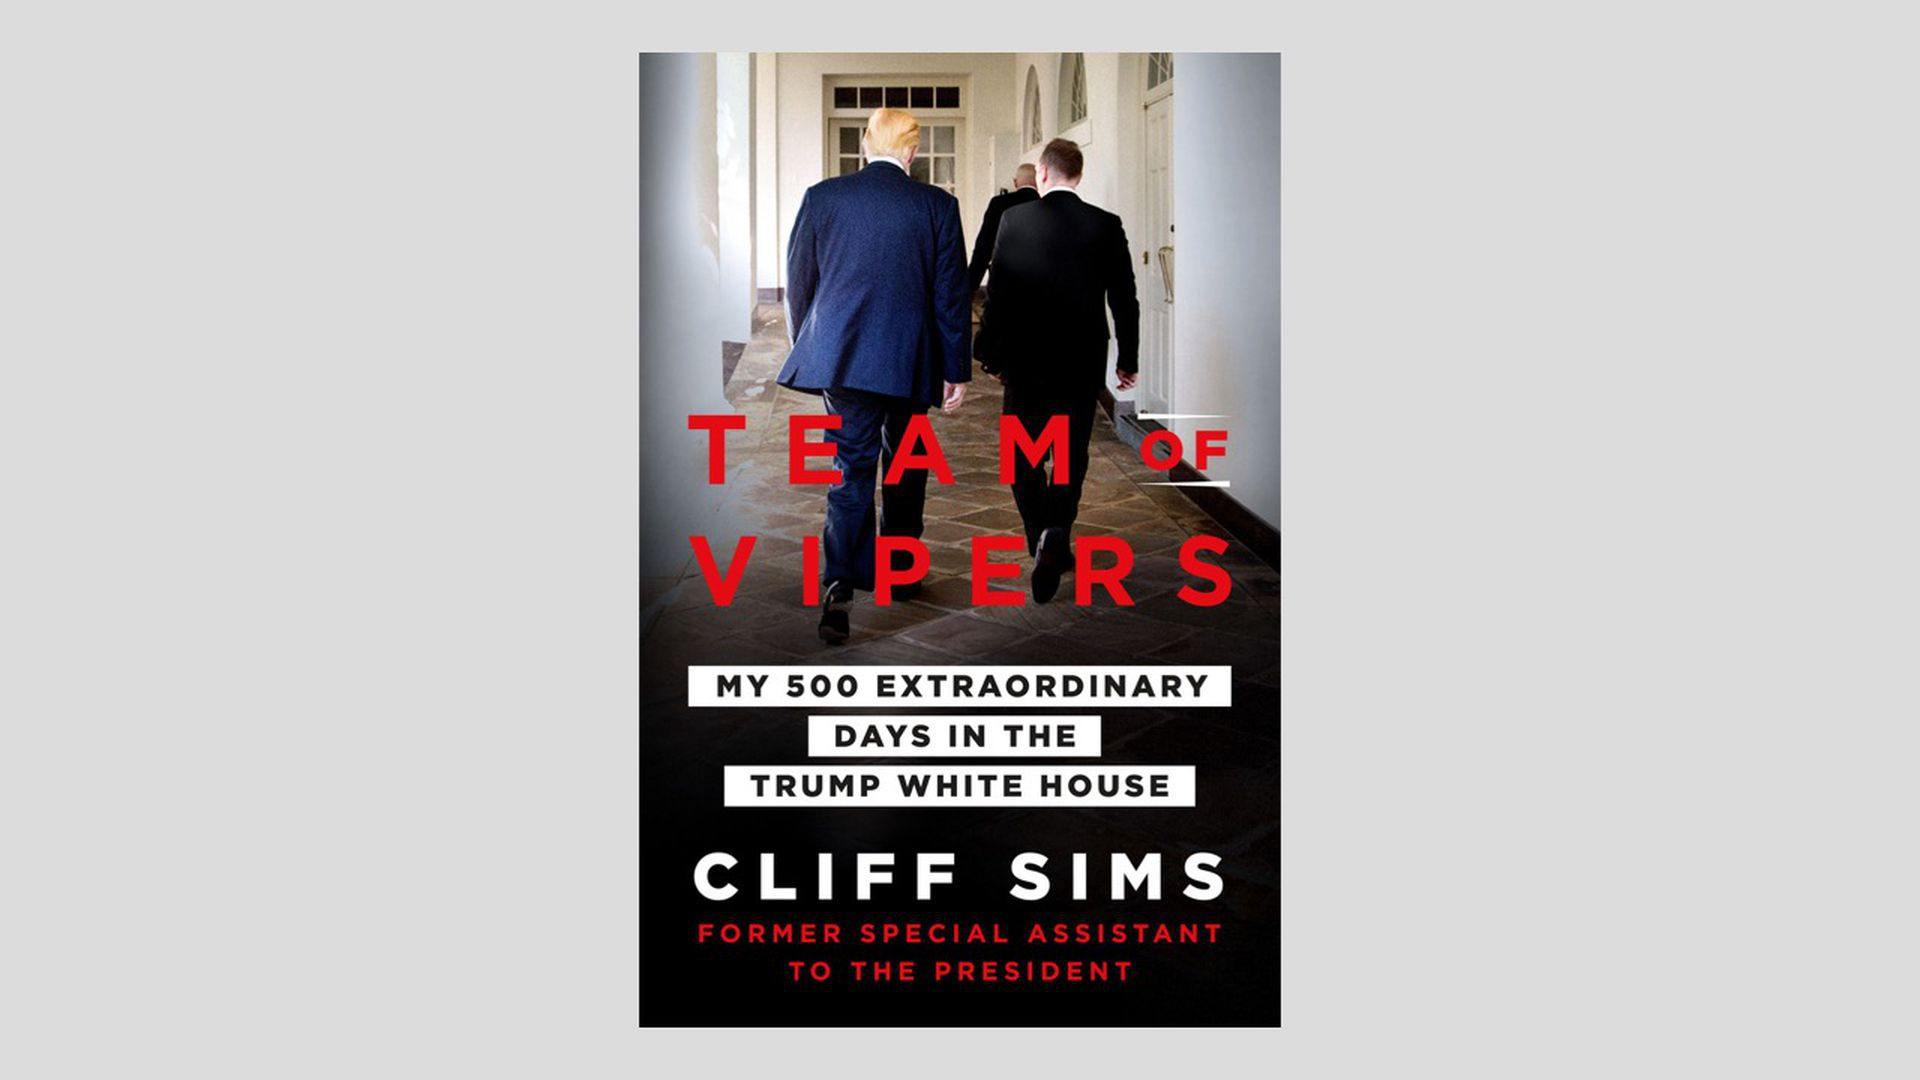 Book cover of Team of vipers